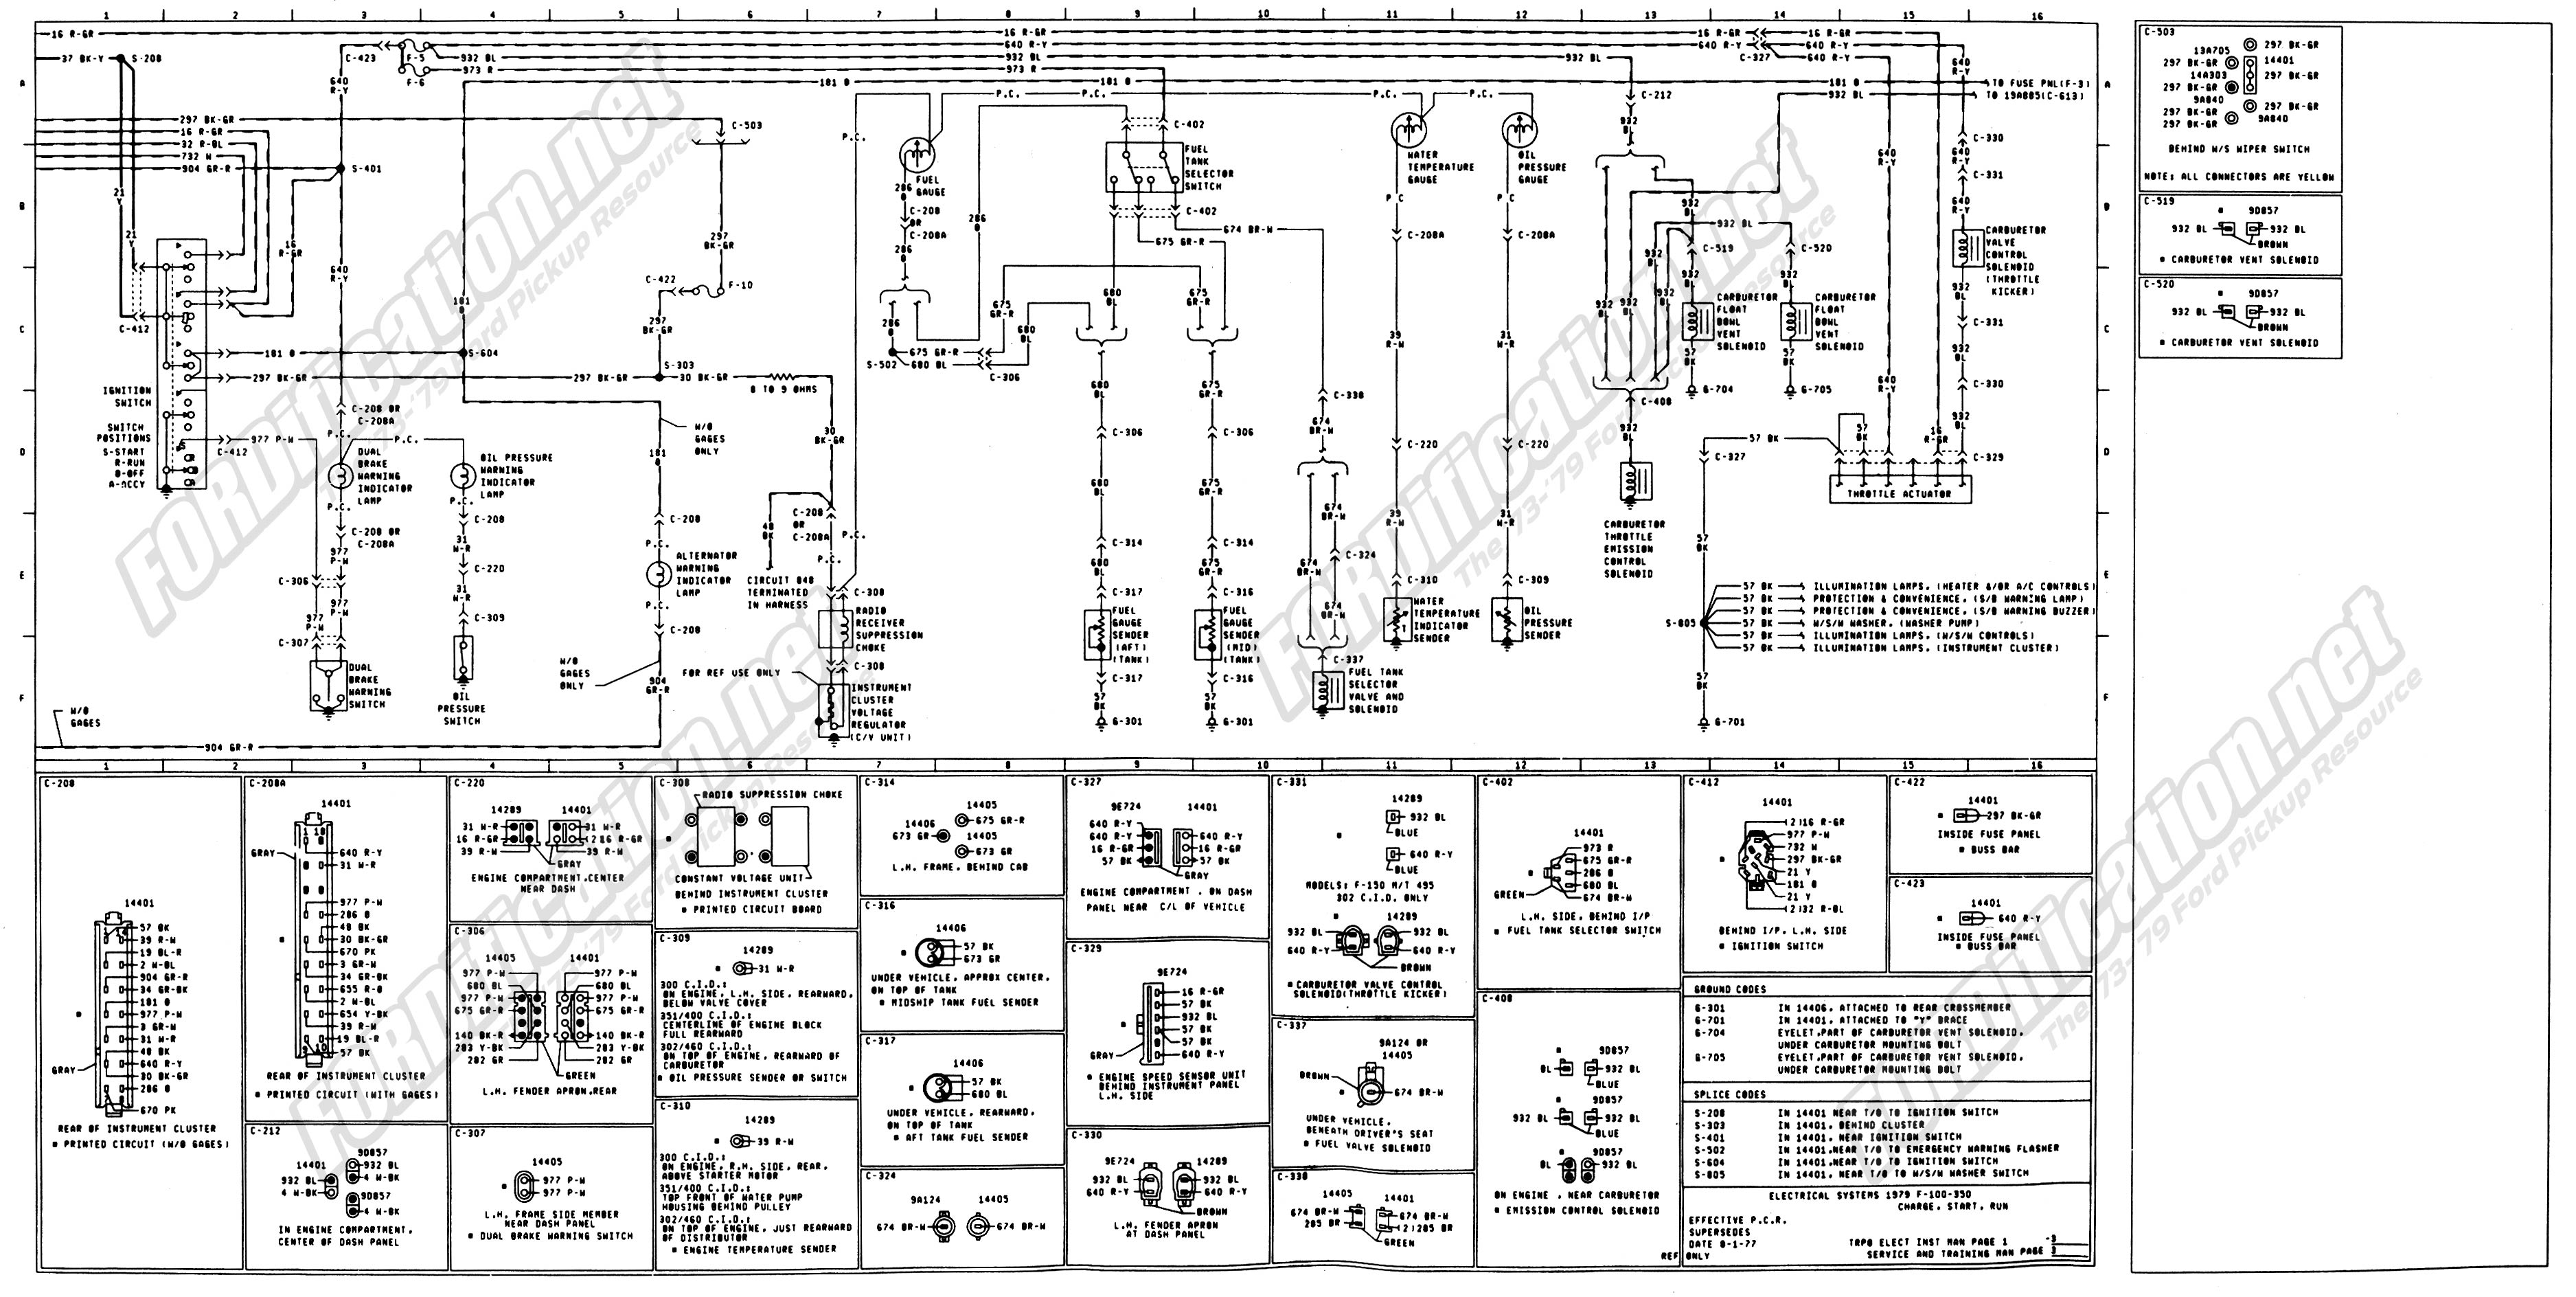 wiring_79master_3of9 2001 ford f250 wiring diagram 1964 ford f 250 truck wiring diagram 6.0 powerstroke fuel pump wiring diagram at alyssarenee.co